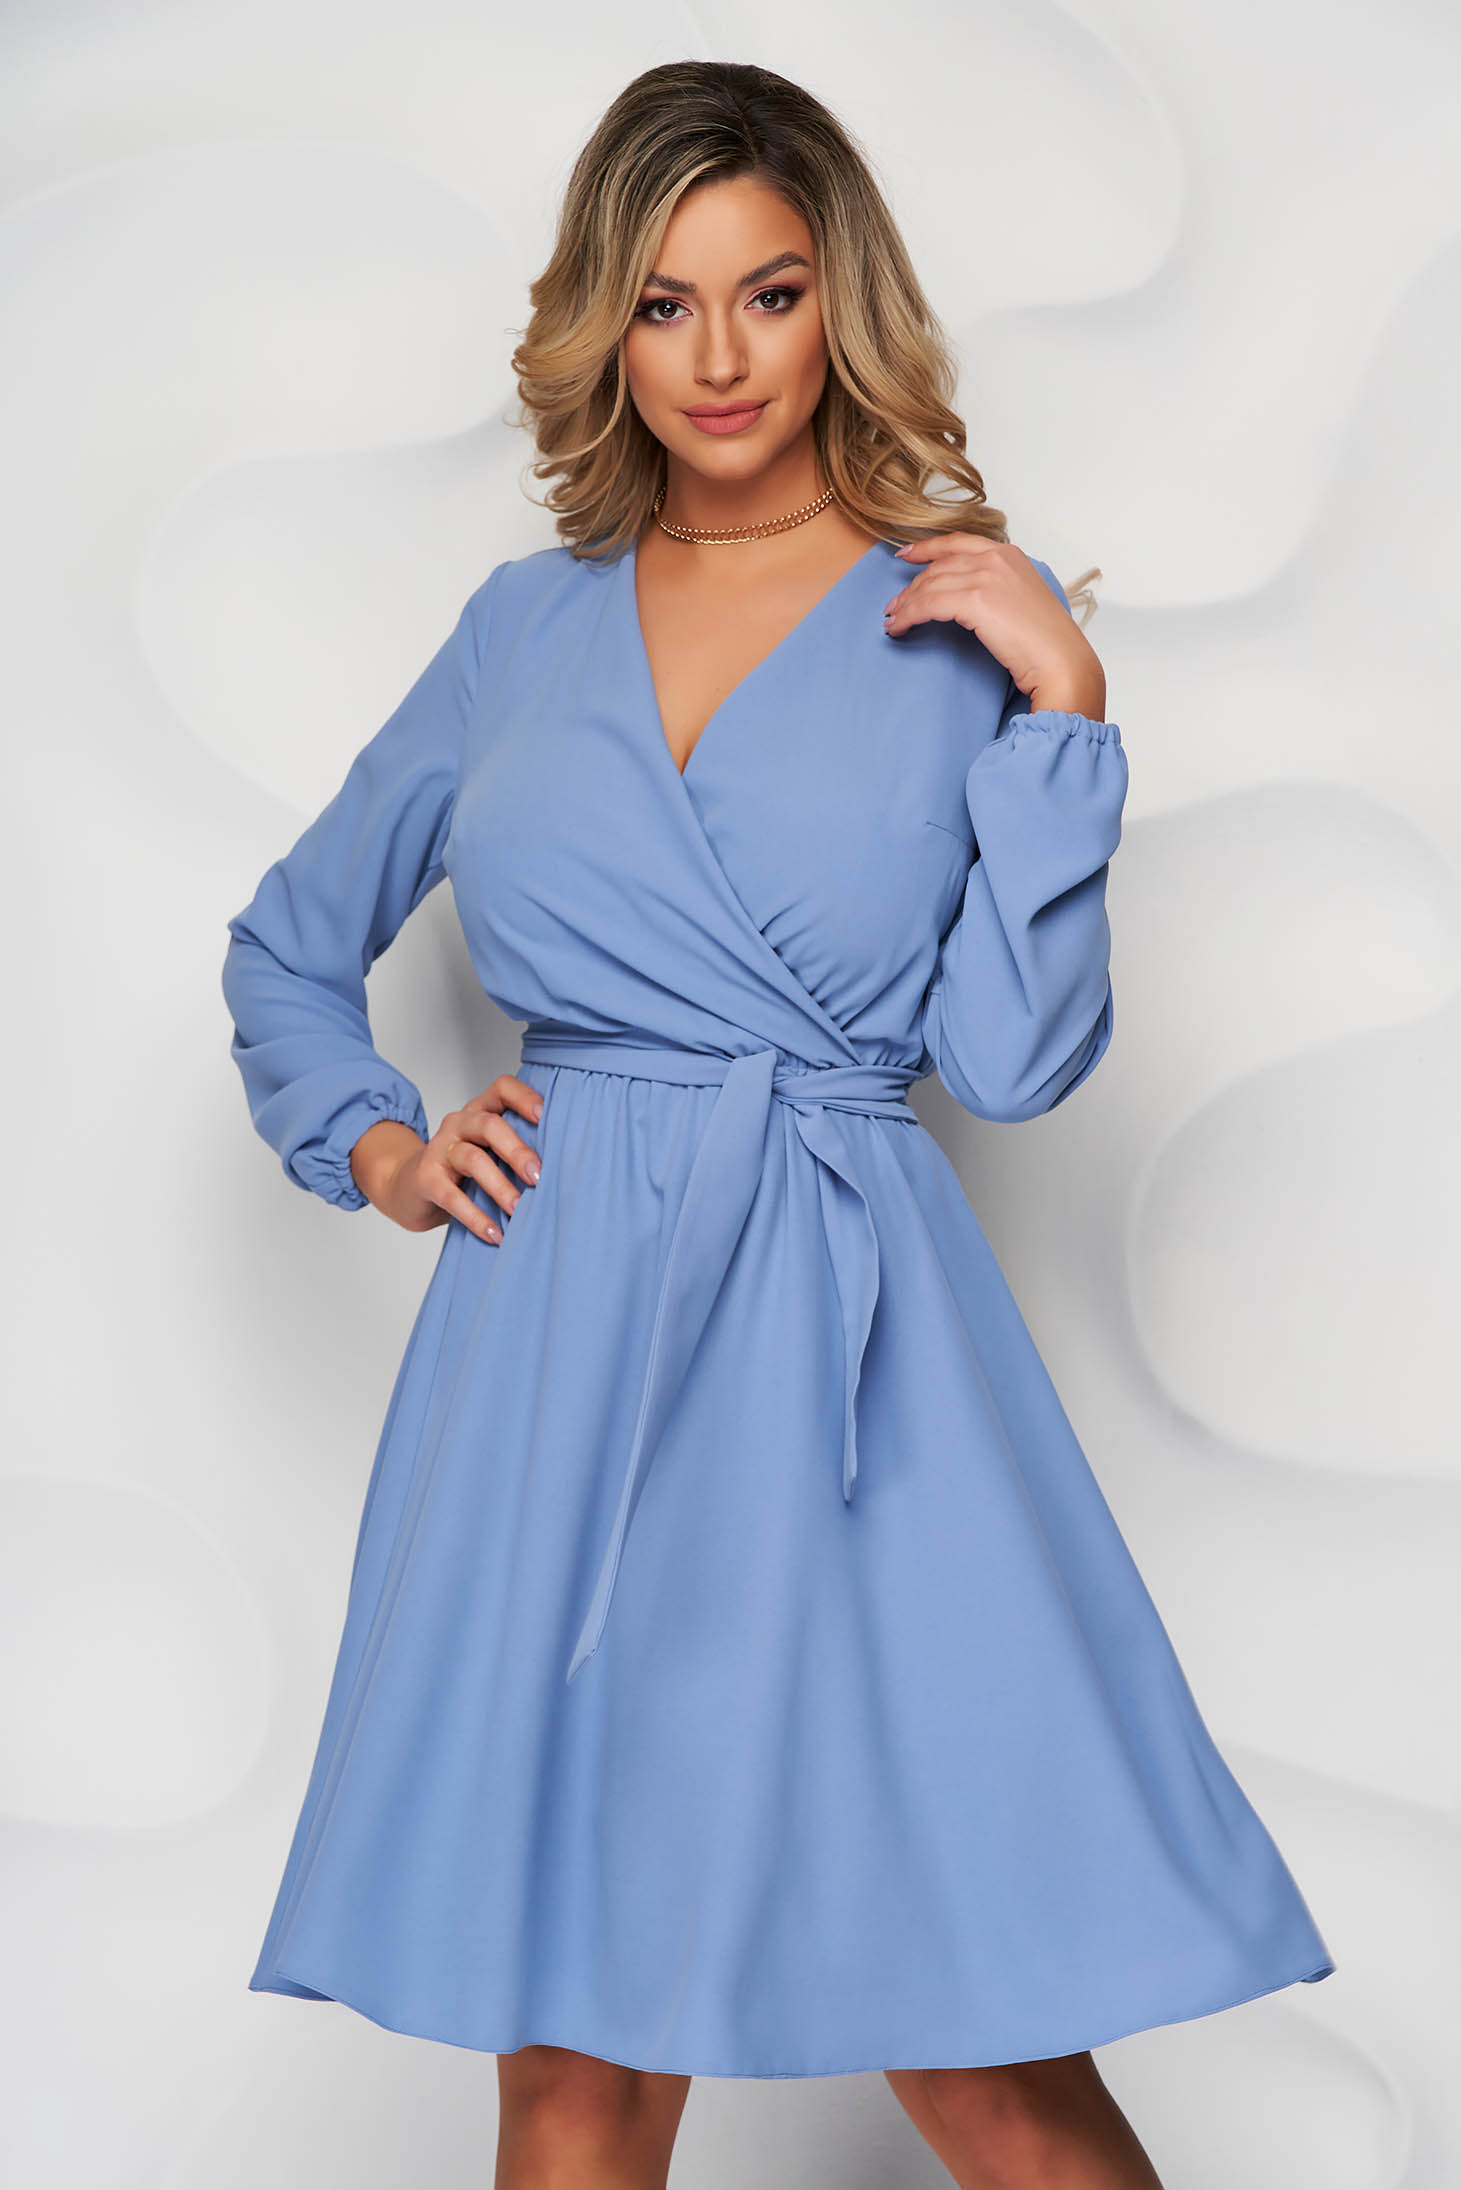 Dress StarShinerS blue midi cloche with elastic waist wrap over front with inside lining